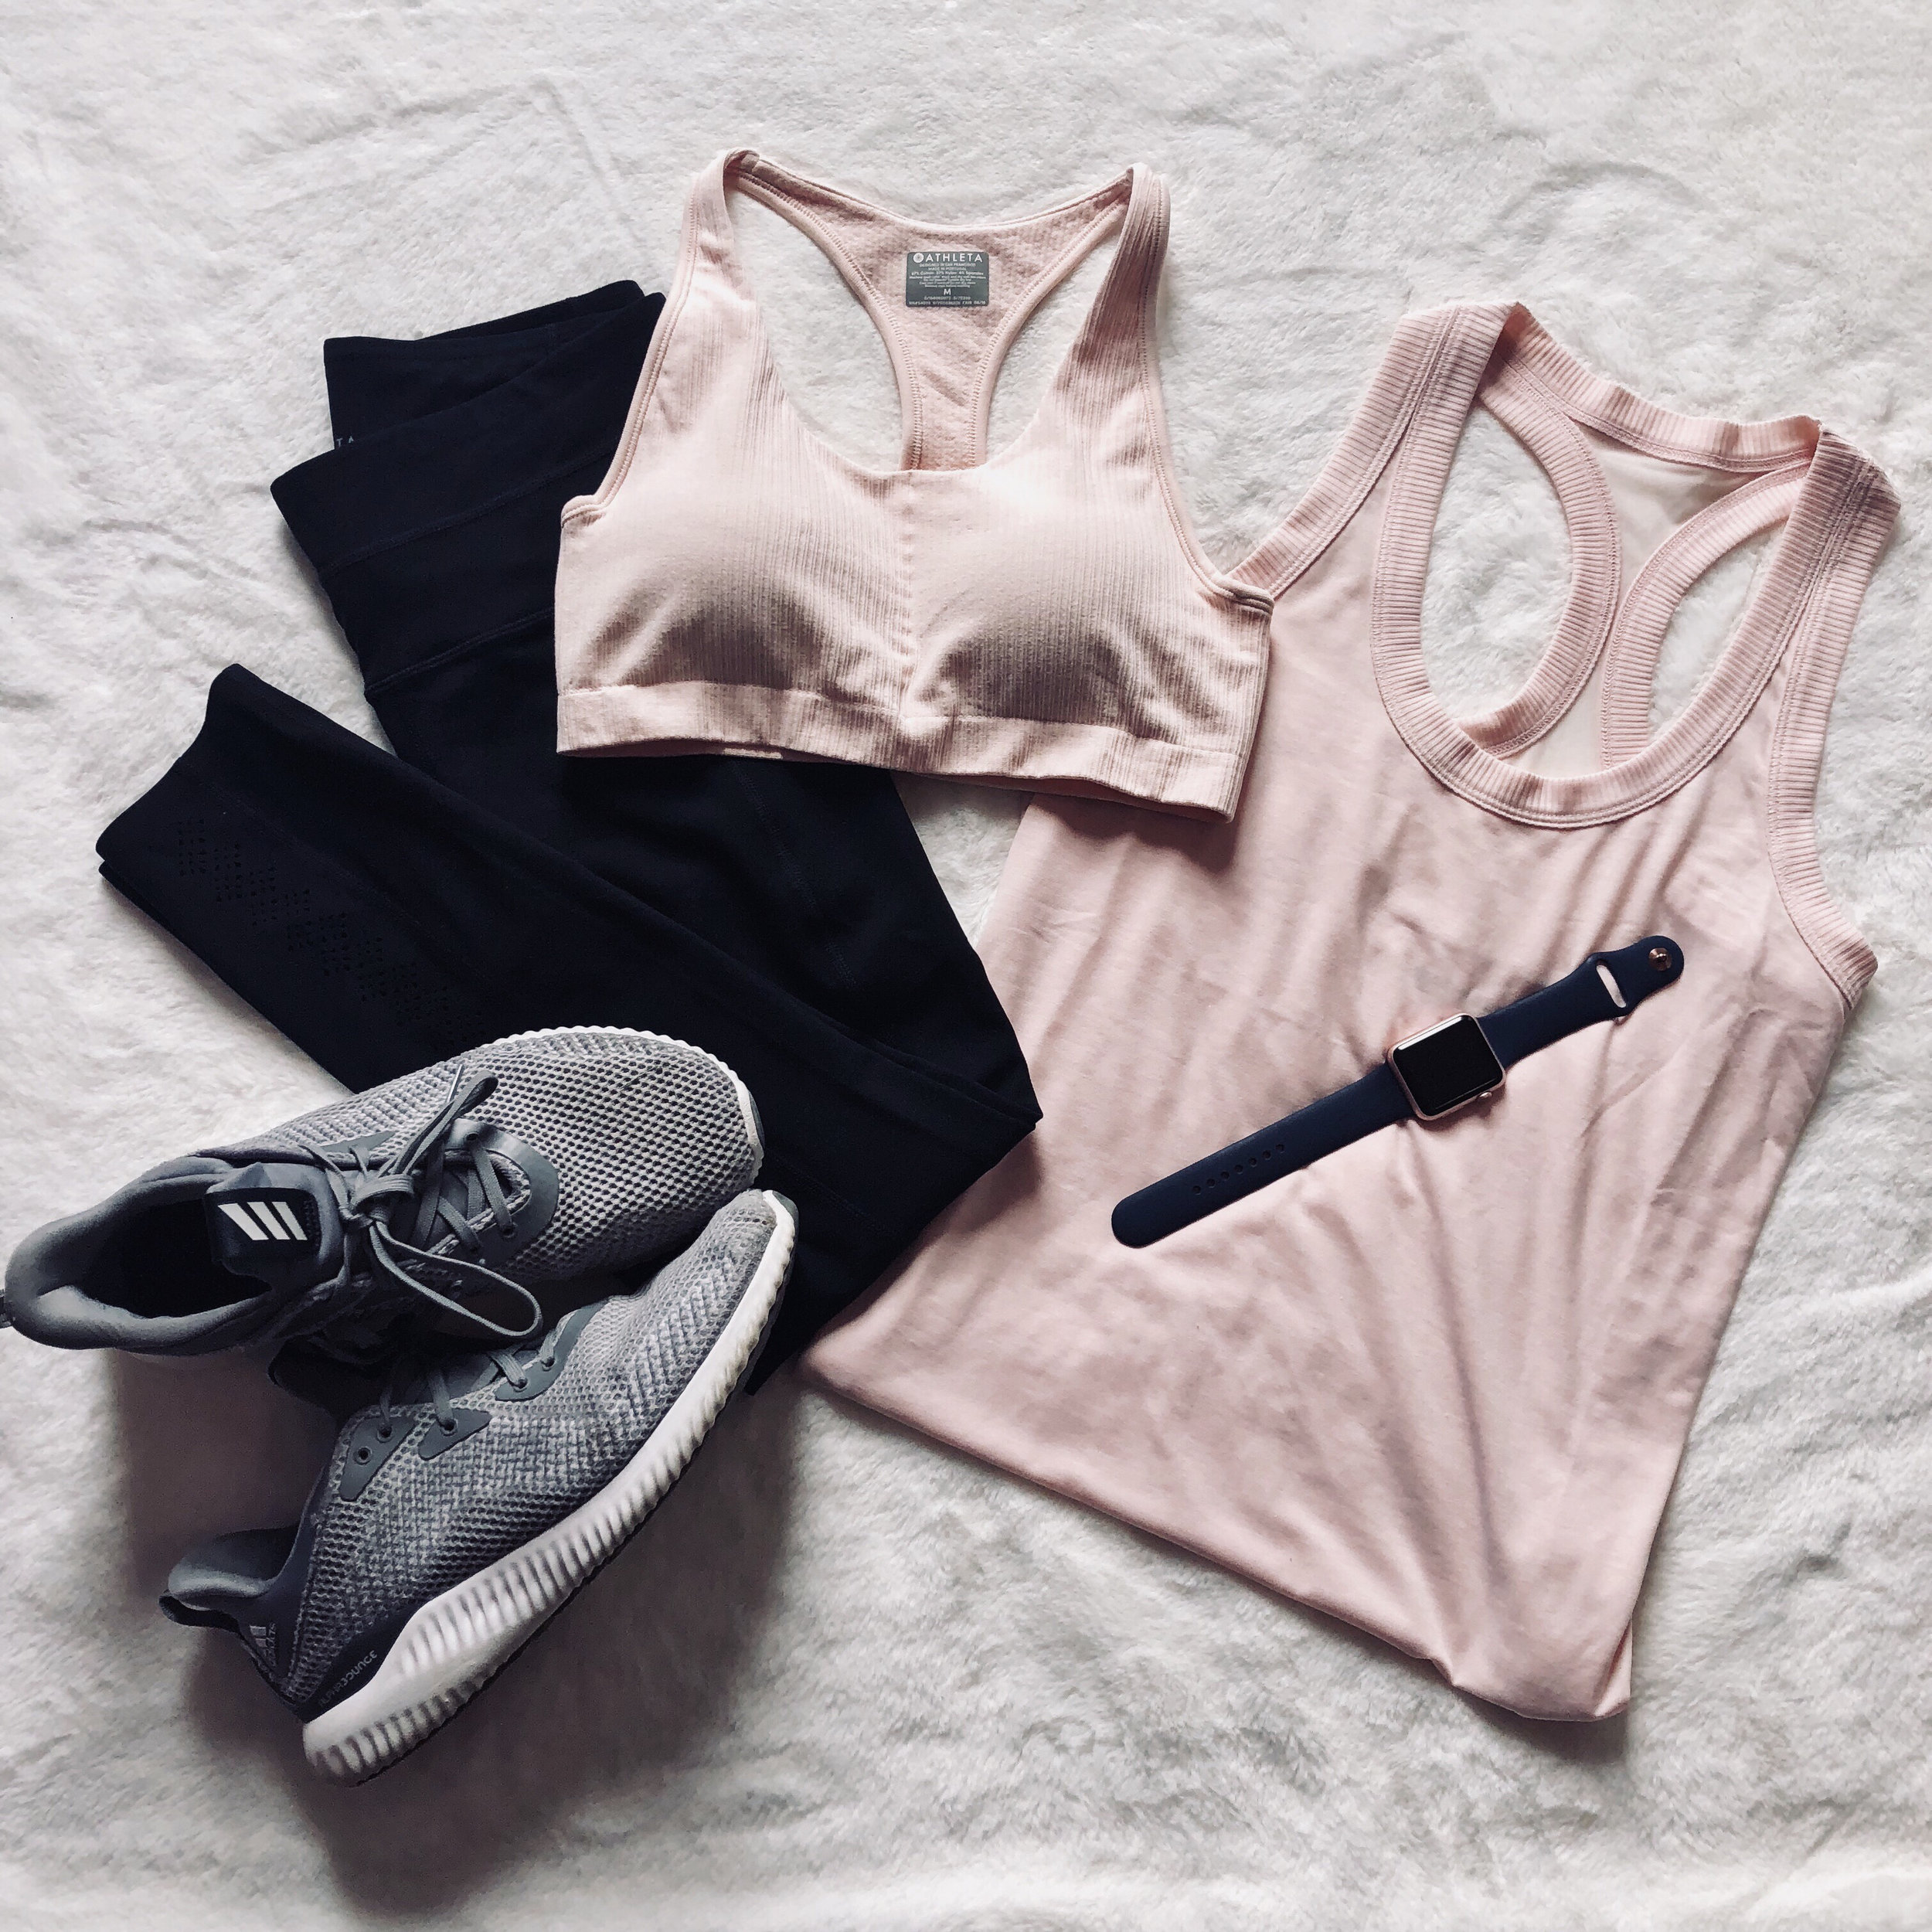 - I found the perfect pink workout outfit at Athleta.